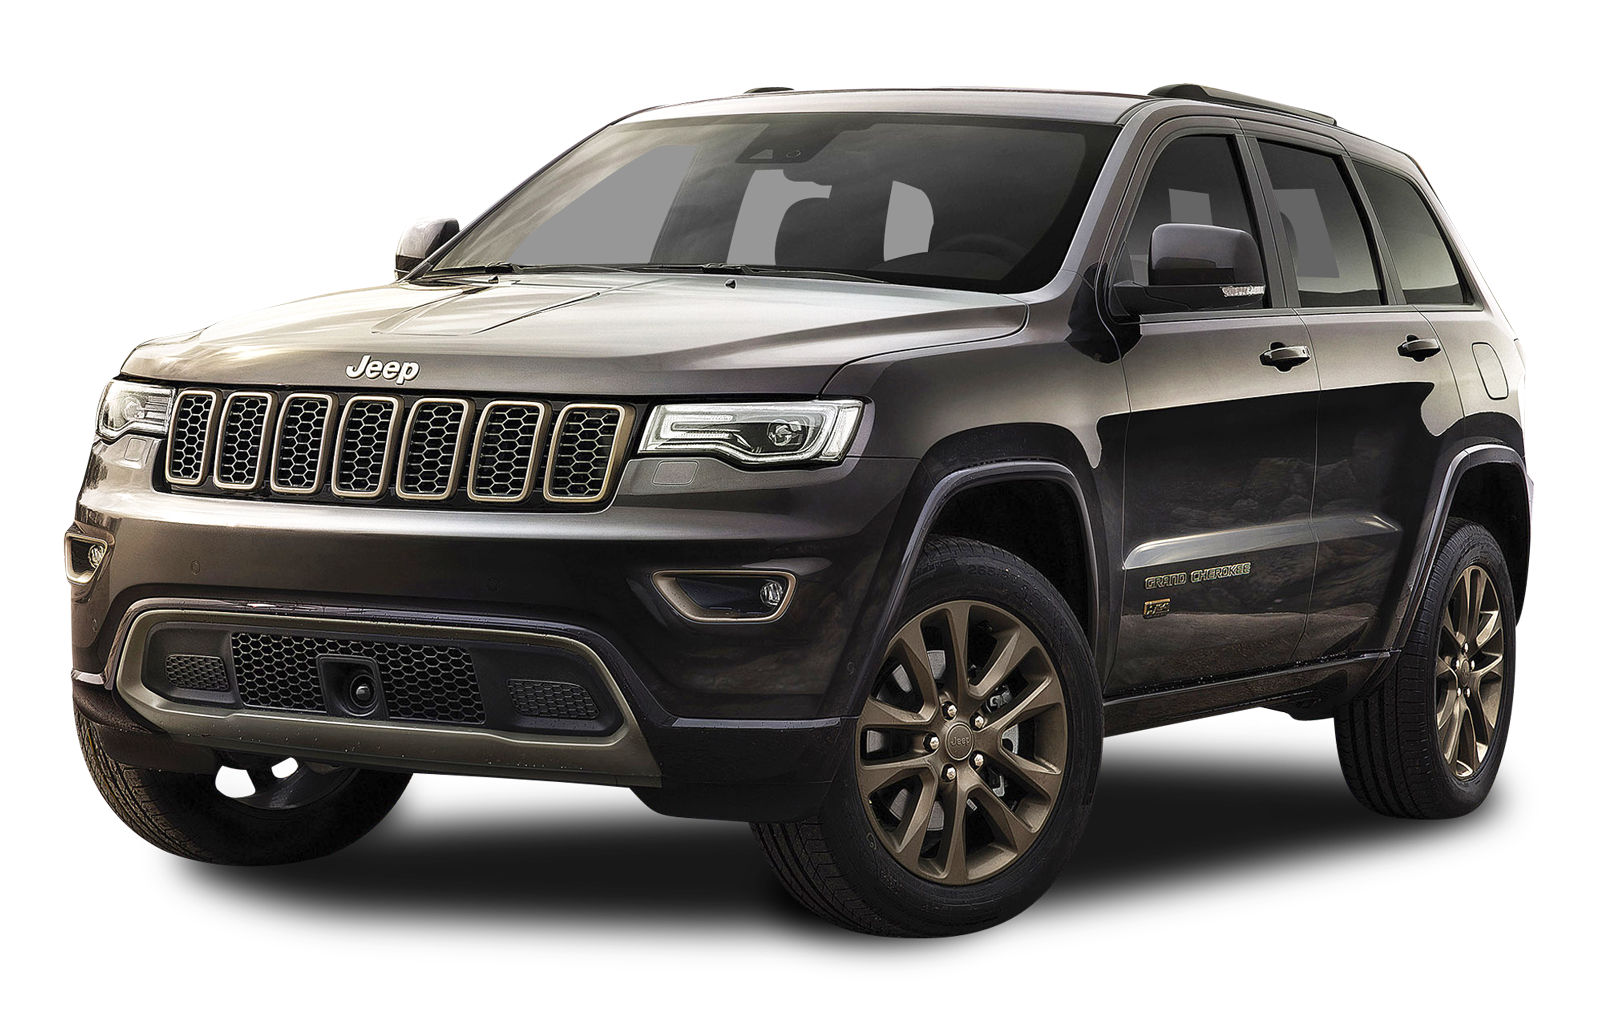 Jeep Png Images Off Road Jeep Cars Free Download Free